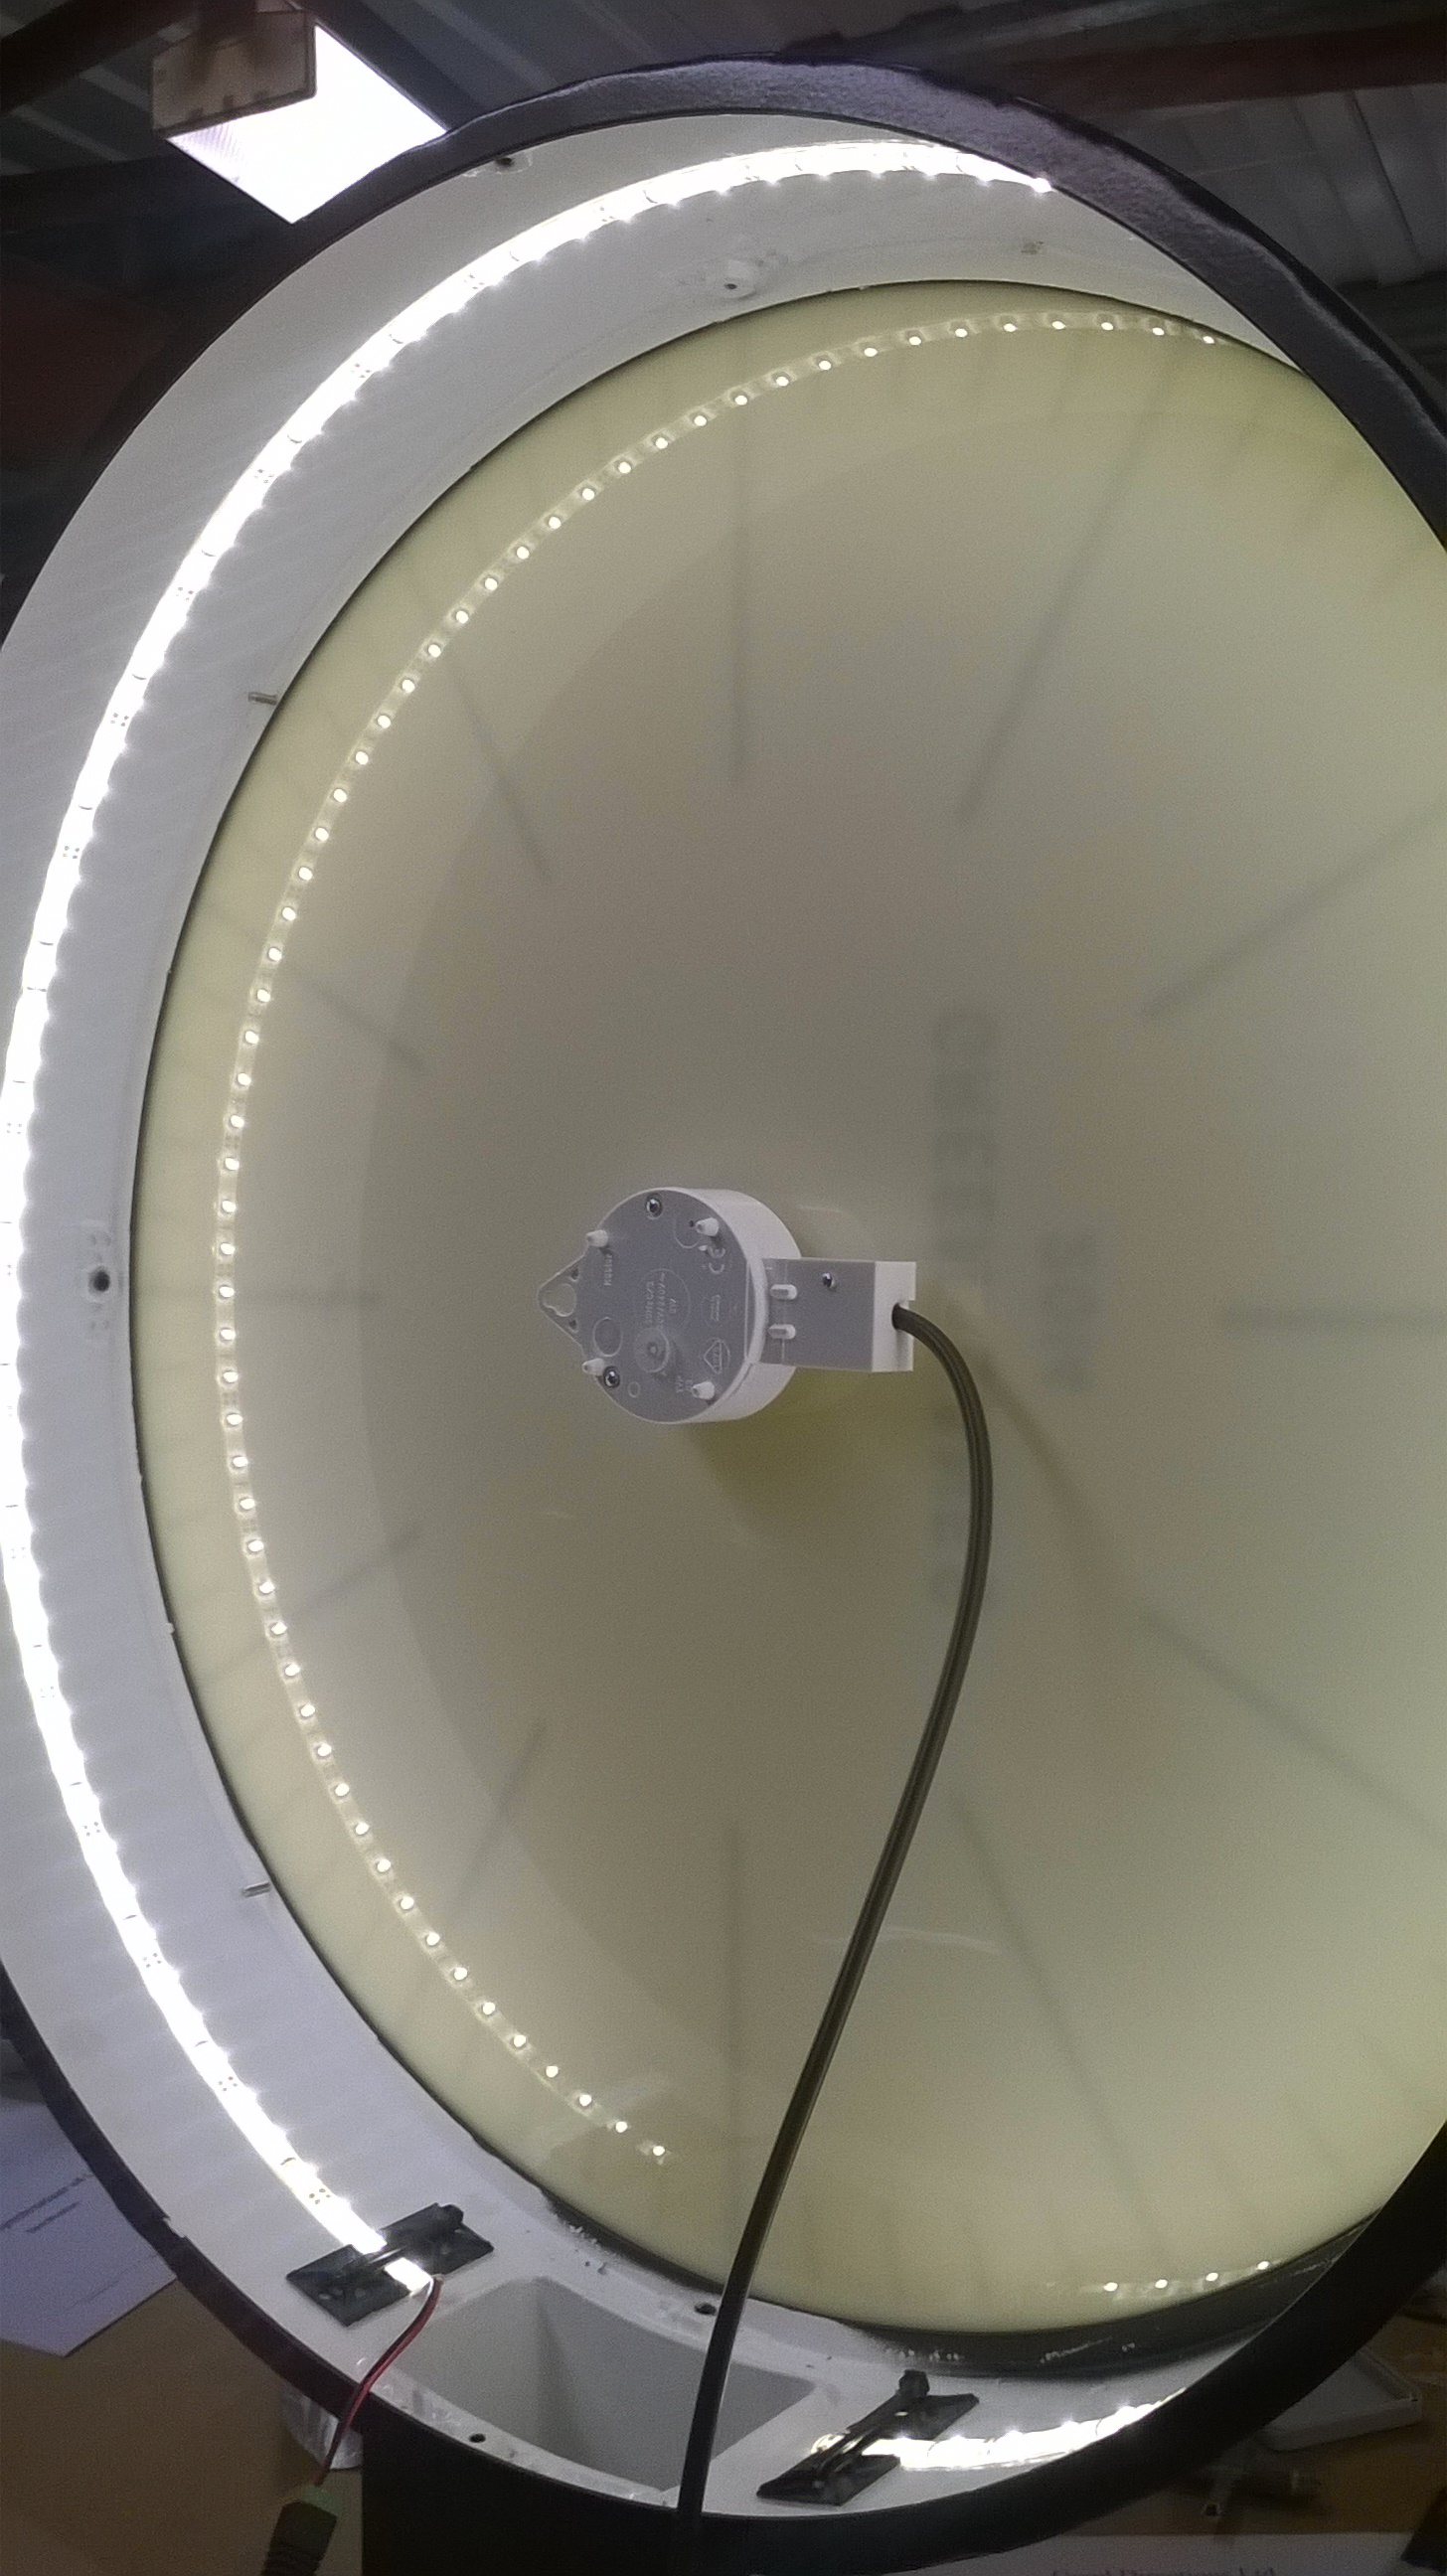 LED illuminated drum clock